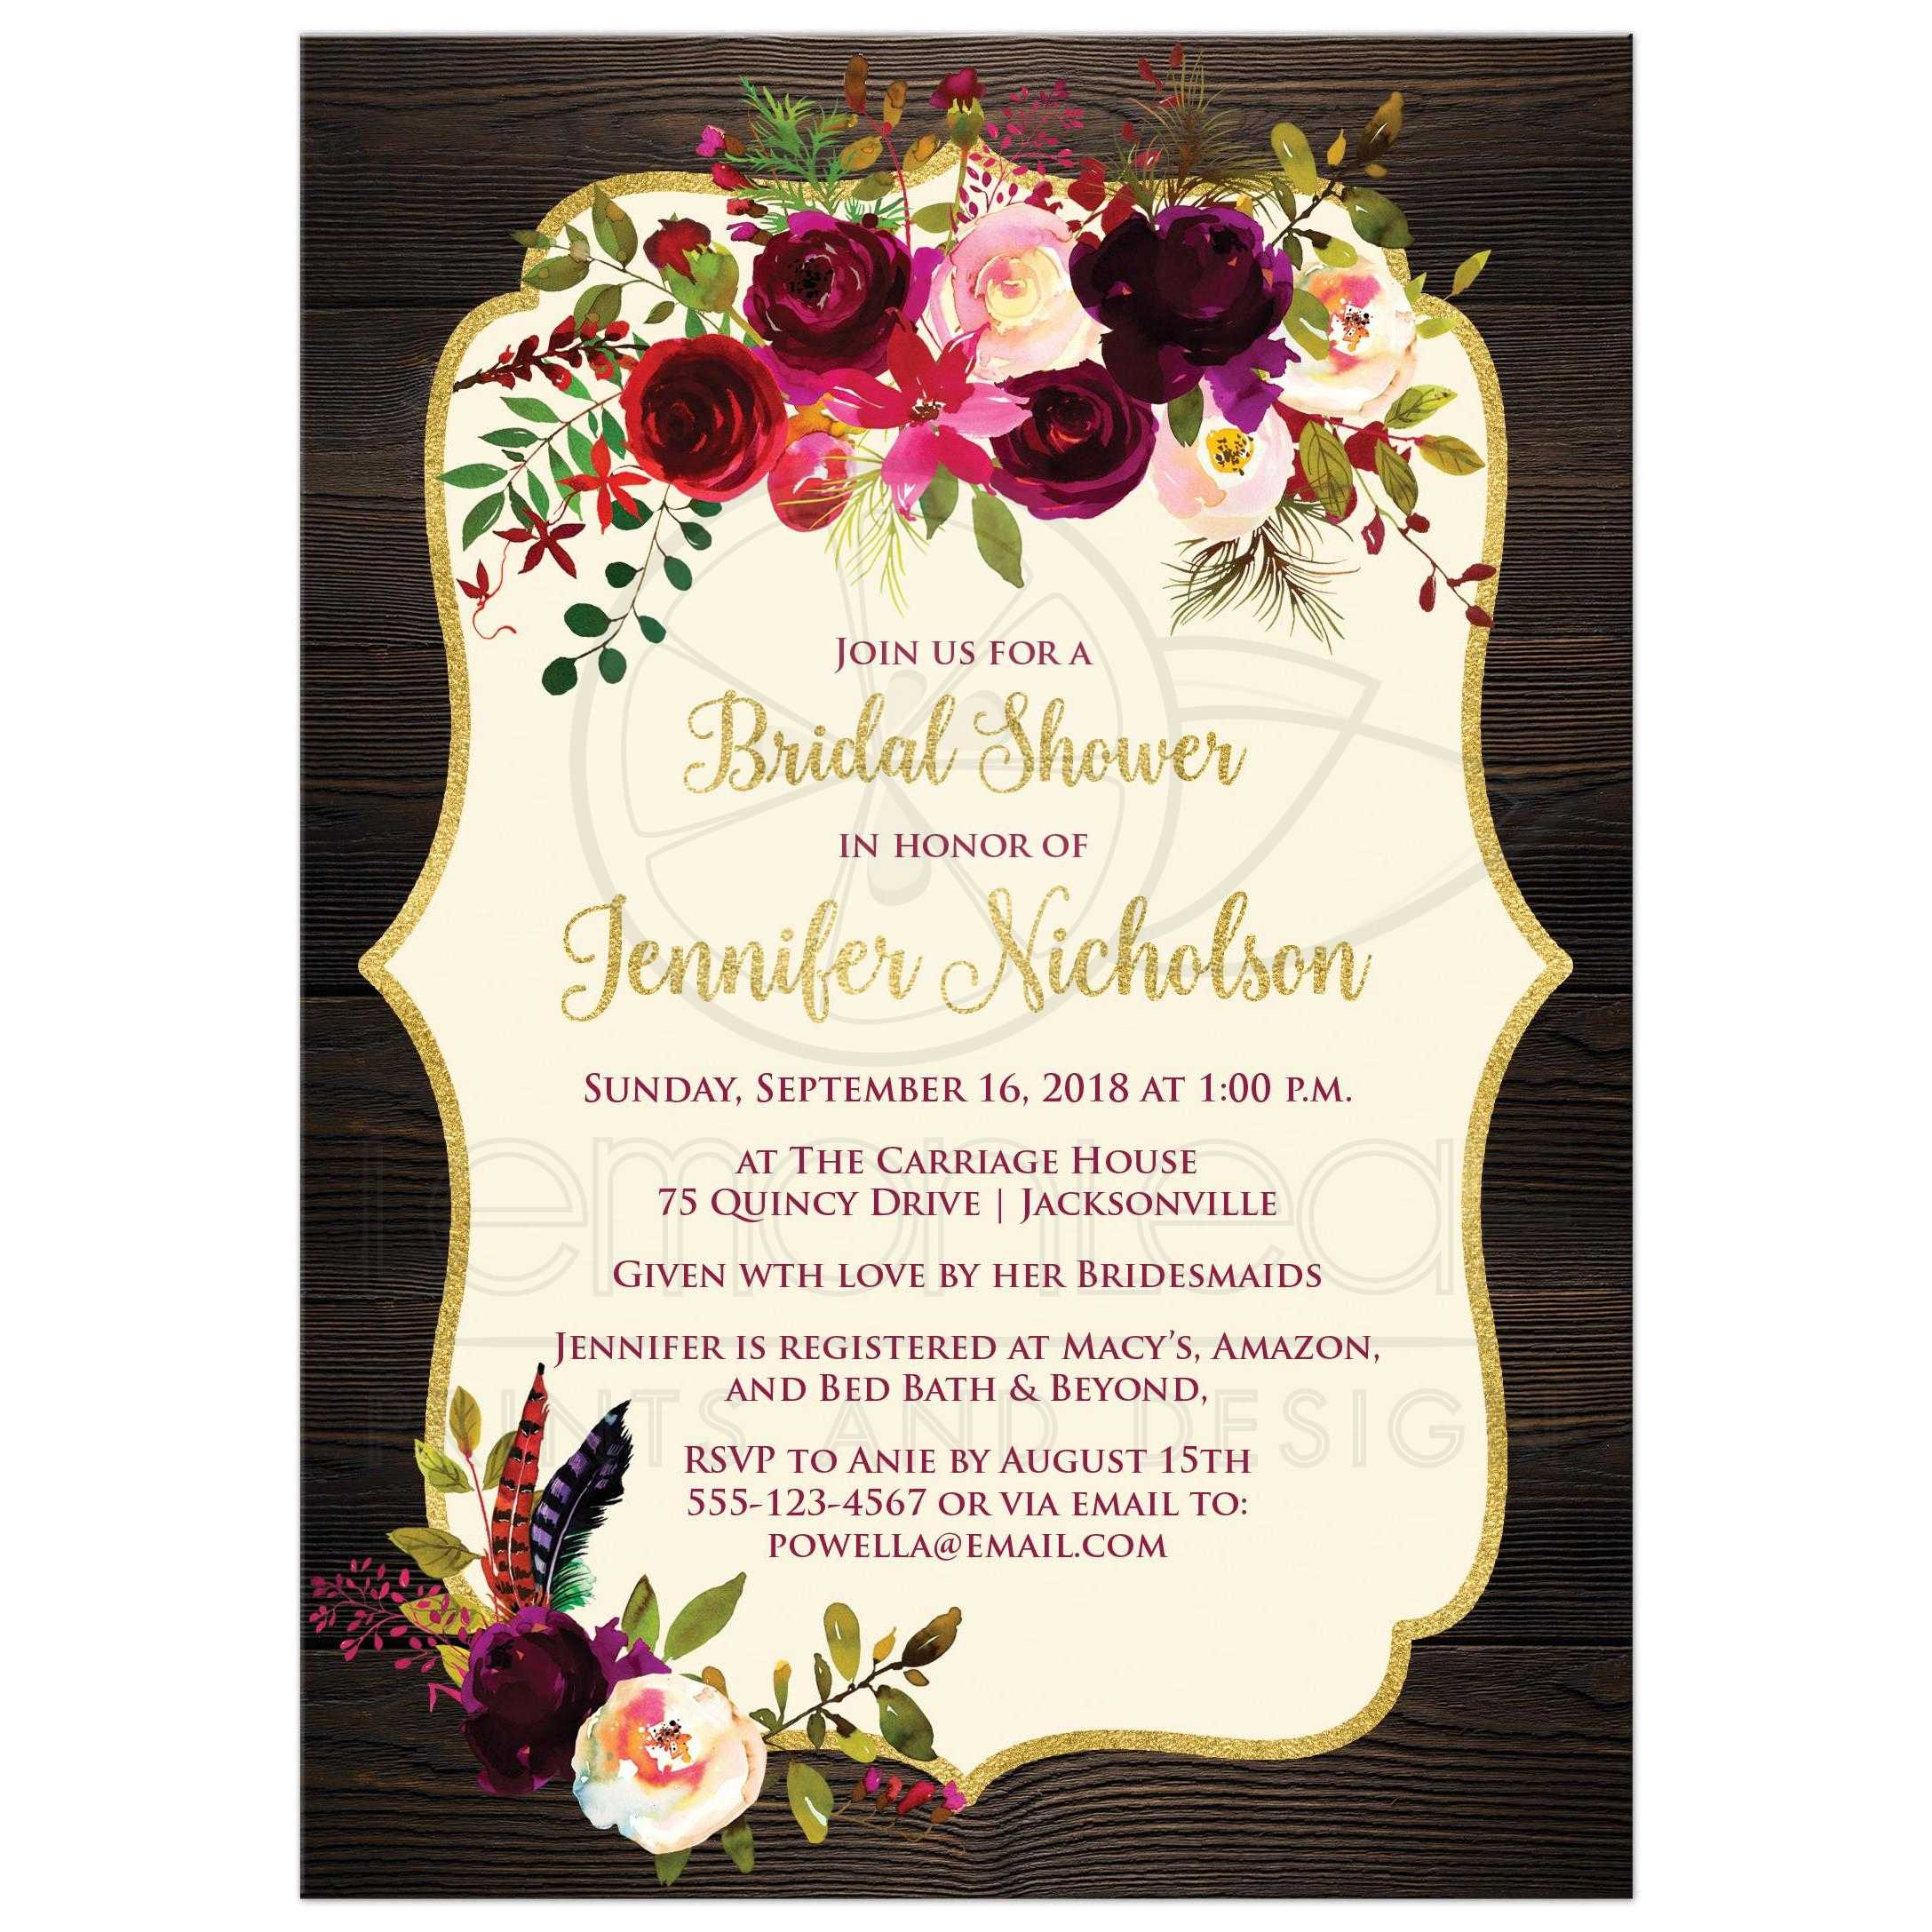 Rustic Boho Elegance Bridal Shower Invitation Burgundy Watercolor